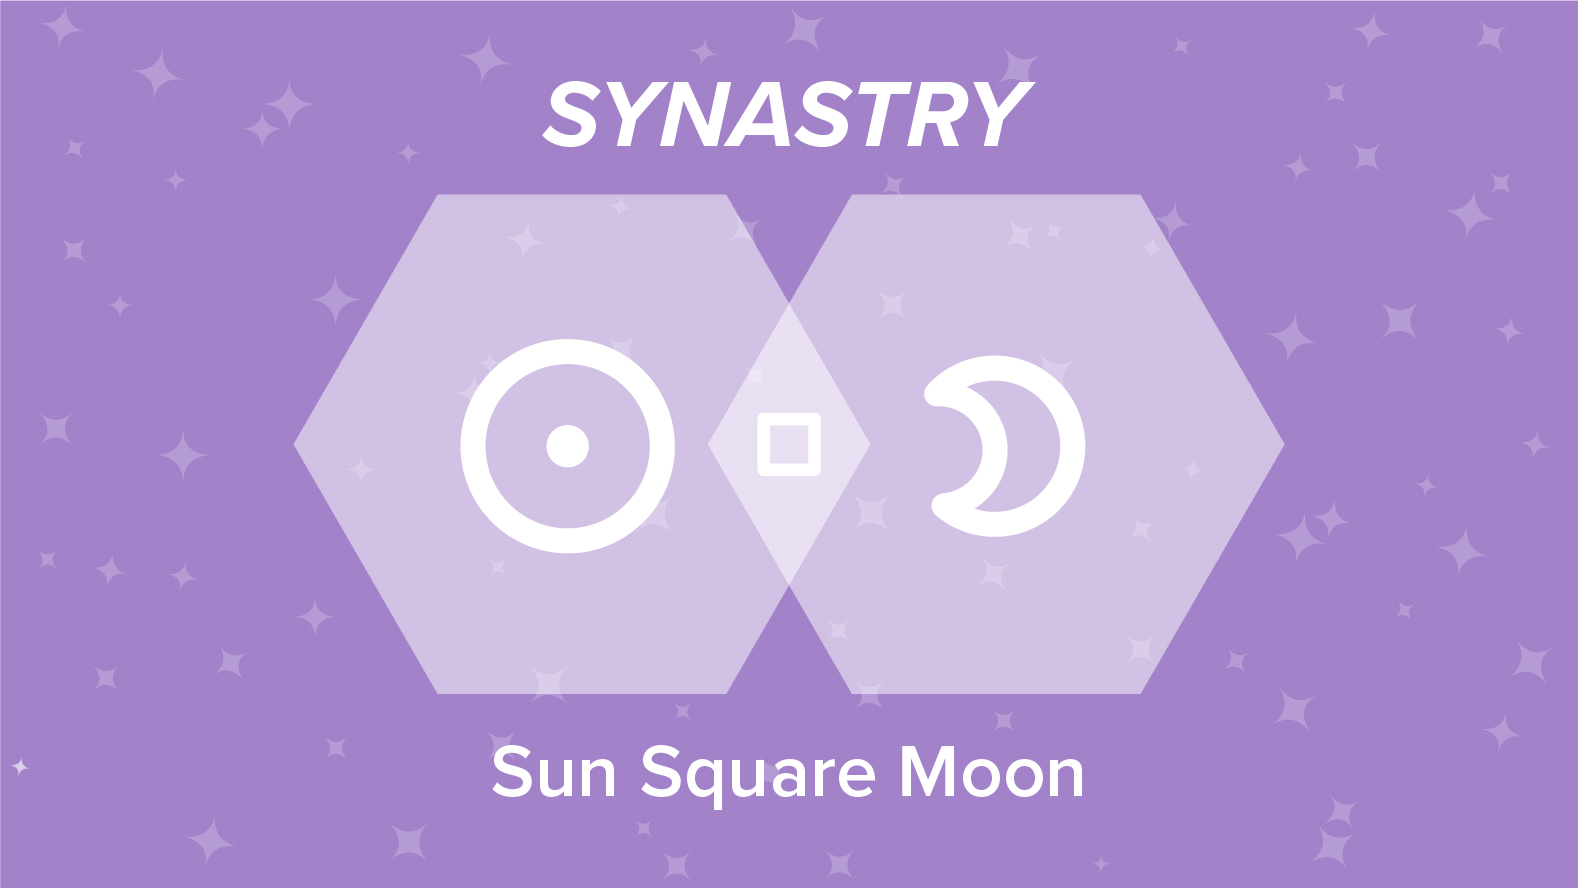 Sun Square Moon Synastry: Relationships and Friendships Explained